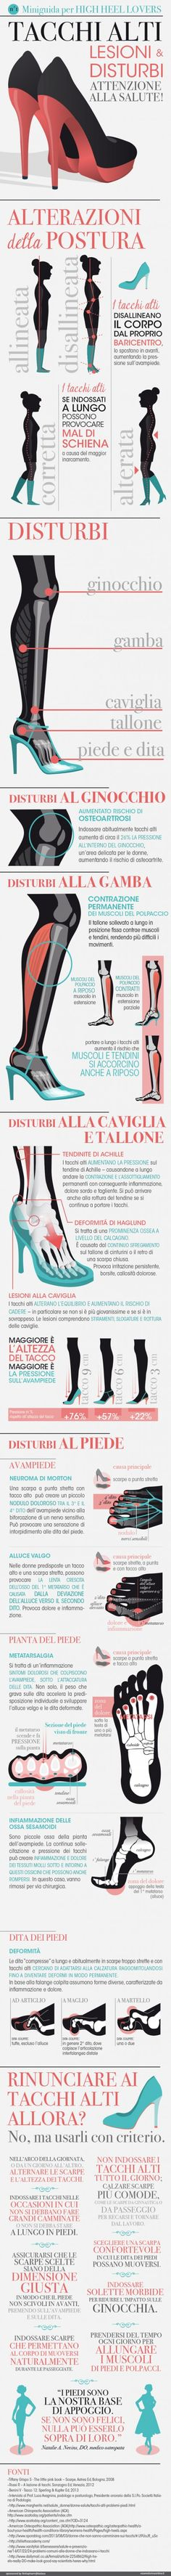 Miniguida per high Heel lovers: attenzione alla salute! infographics designed for esseredonnaonline.it- illustrated by Alice Kle Borghi, kleland.com